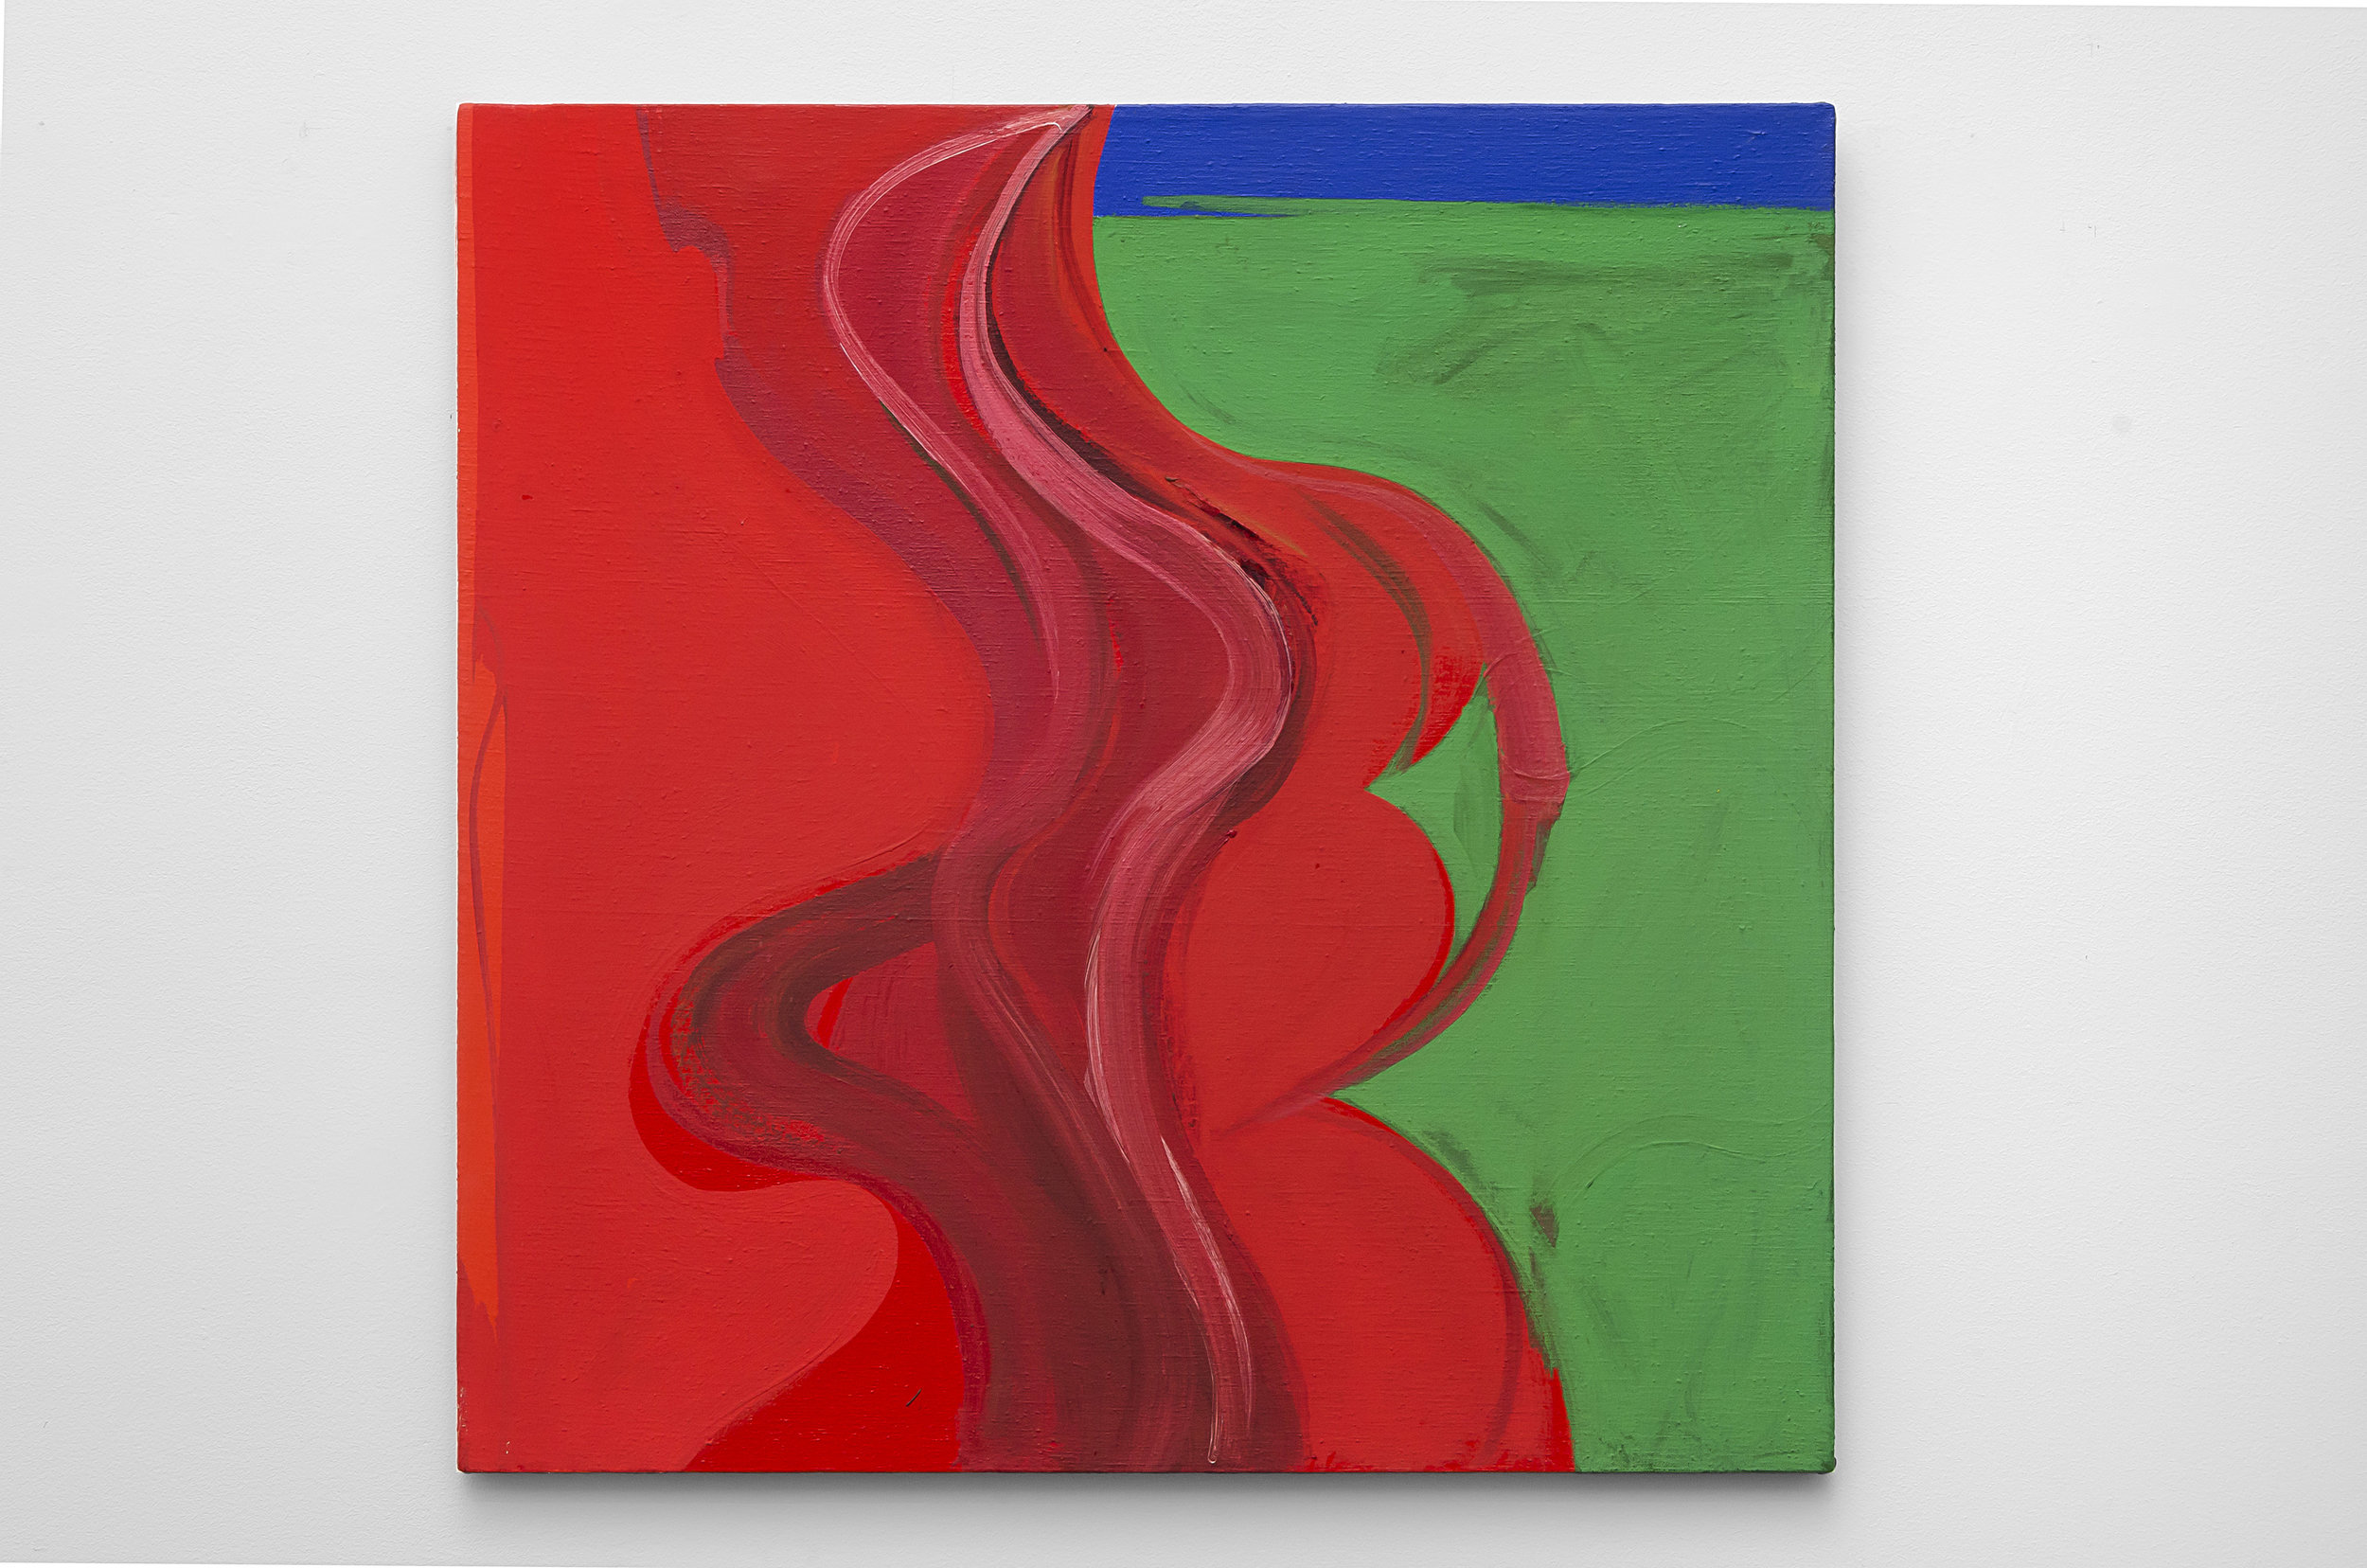 Untitled (G) , c. 1967 acrylic on canvas 30 x 30 inches; 76.2 x 76.2 centimeters